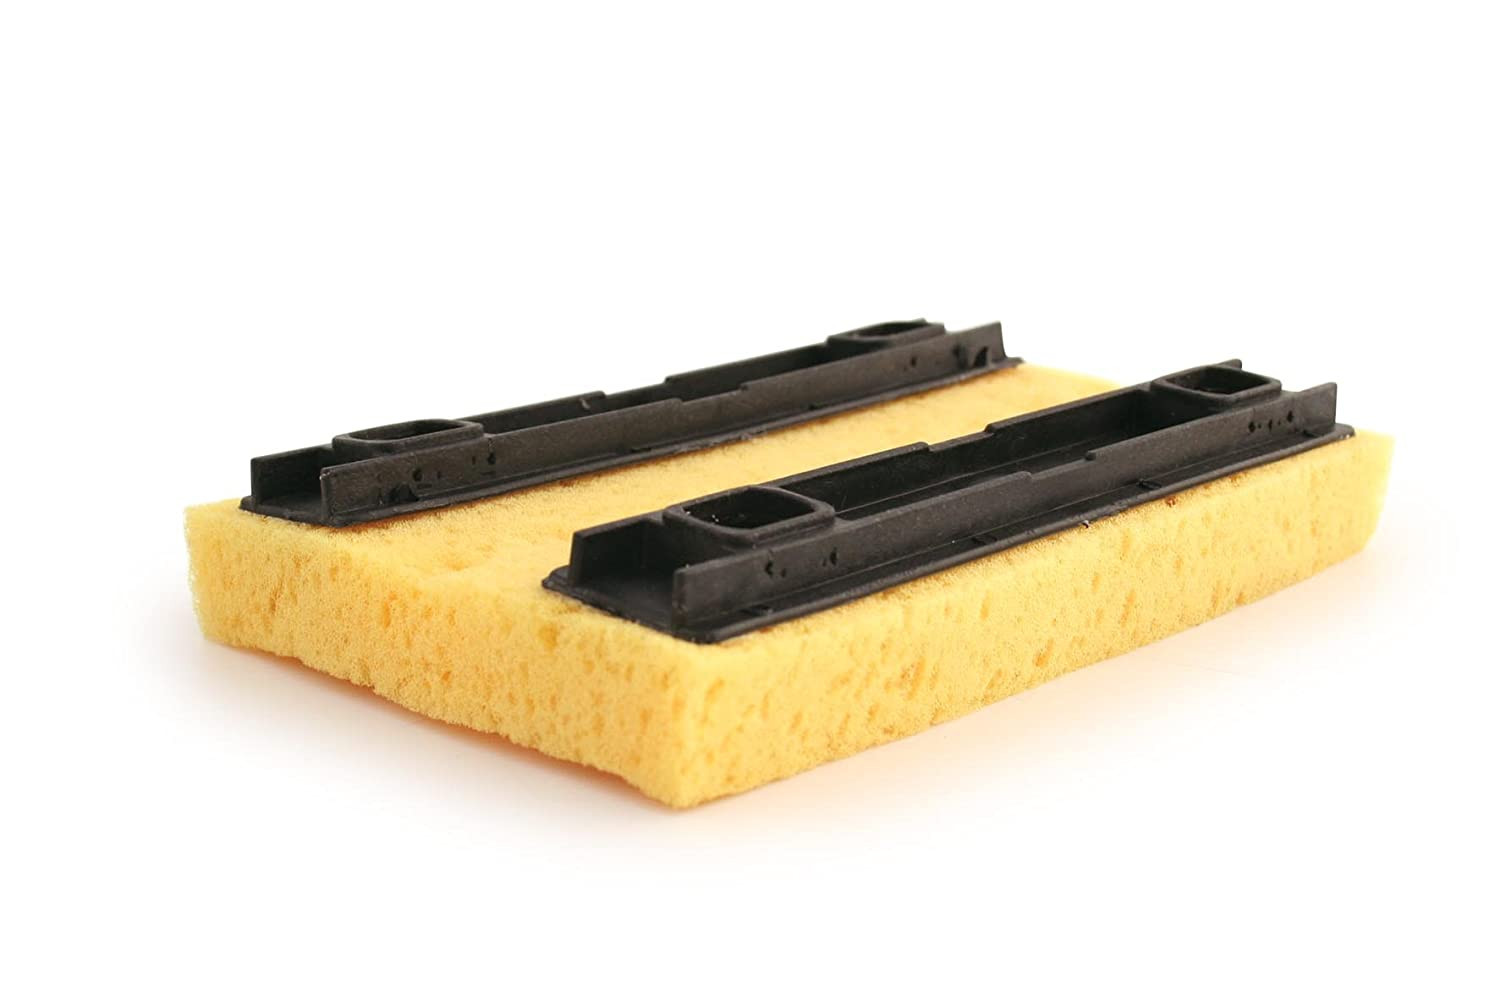 Bentley Chrome Sponge Squeegee Mop Refill for HL.HI.MOP.04 Charles Bentley & Son Ltd HL.HI.MOP.04/R